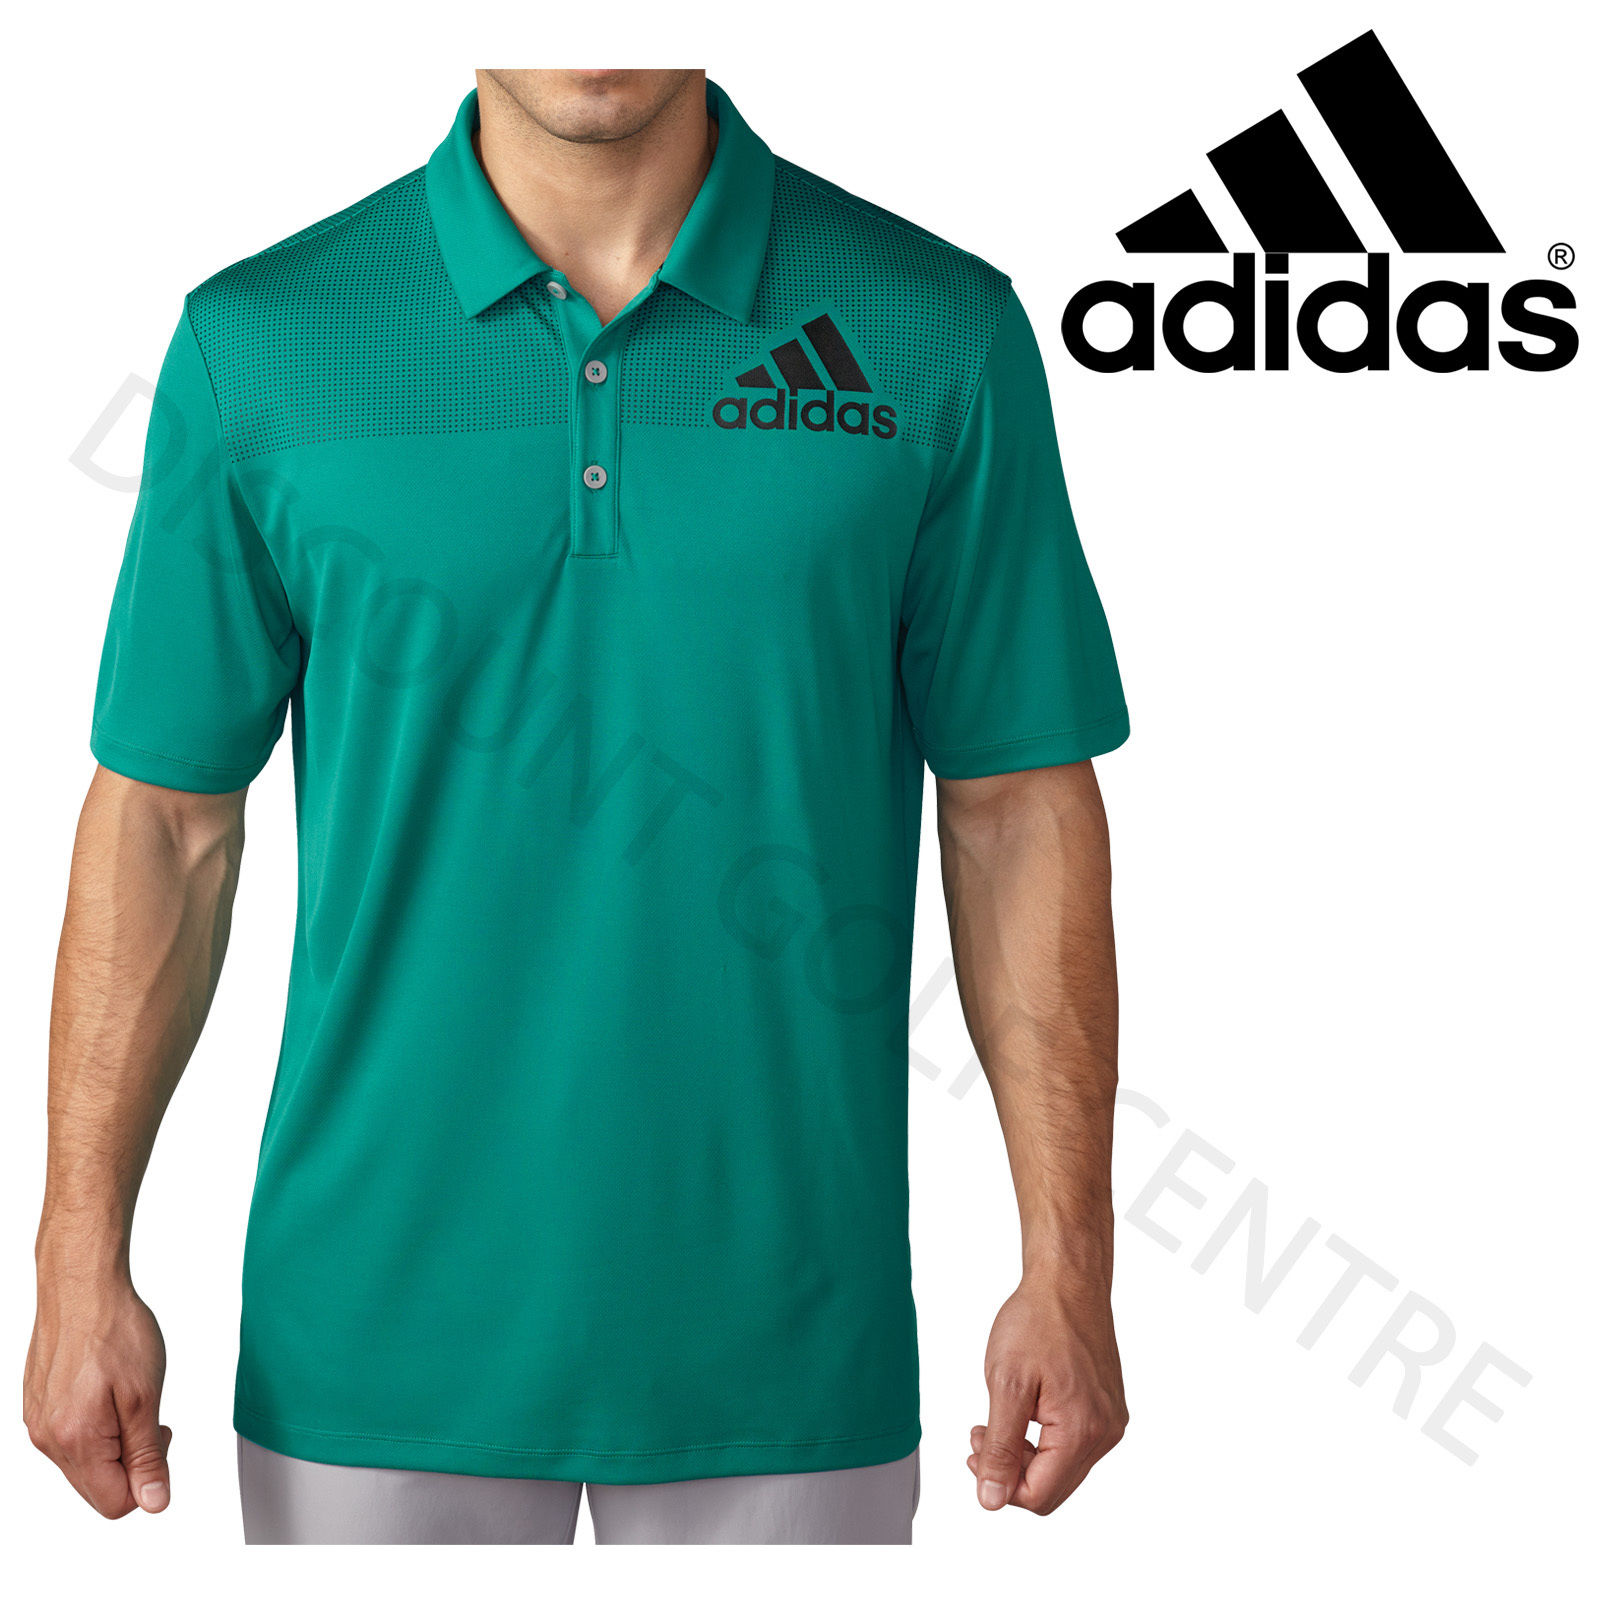 Adidas golf big logo dot print lightweight mens for Polo shirts for printing